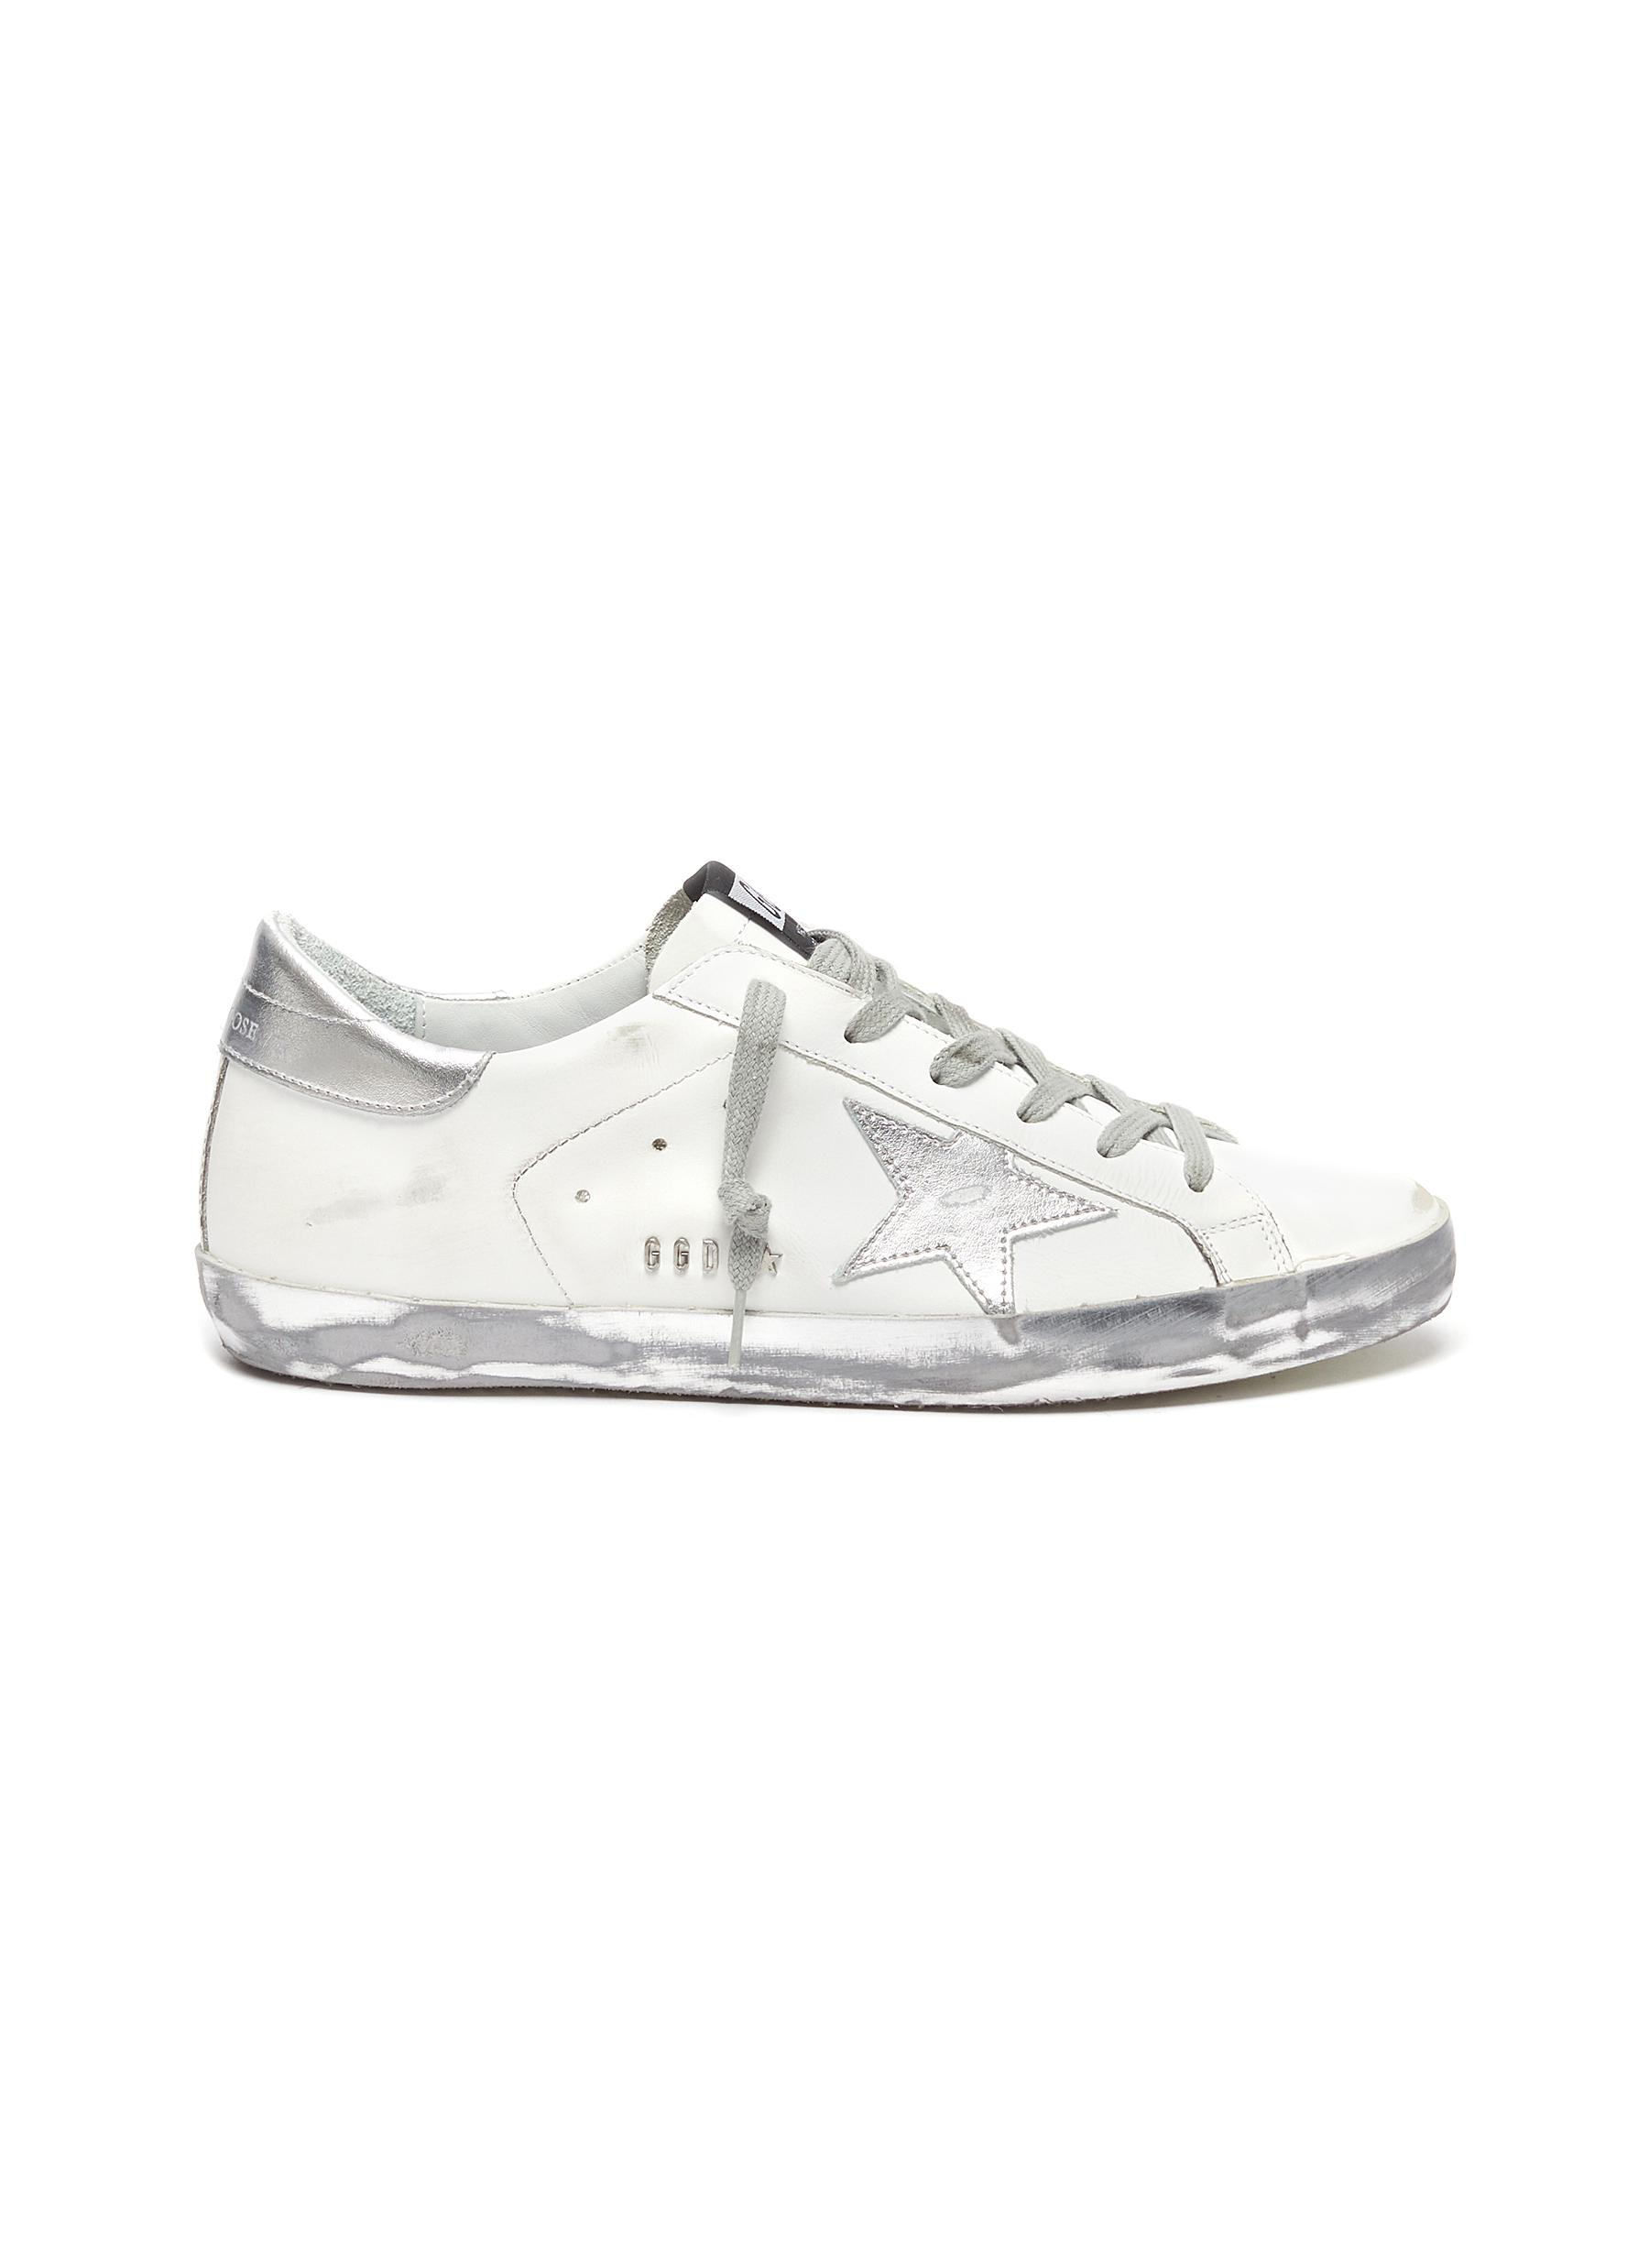 'Superstar' silver accents sneakers